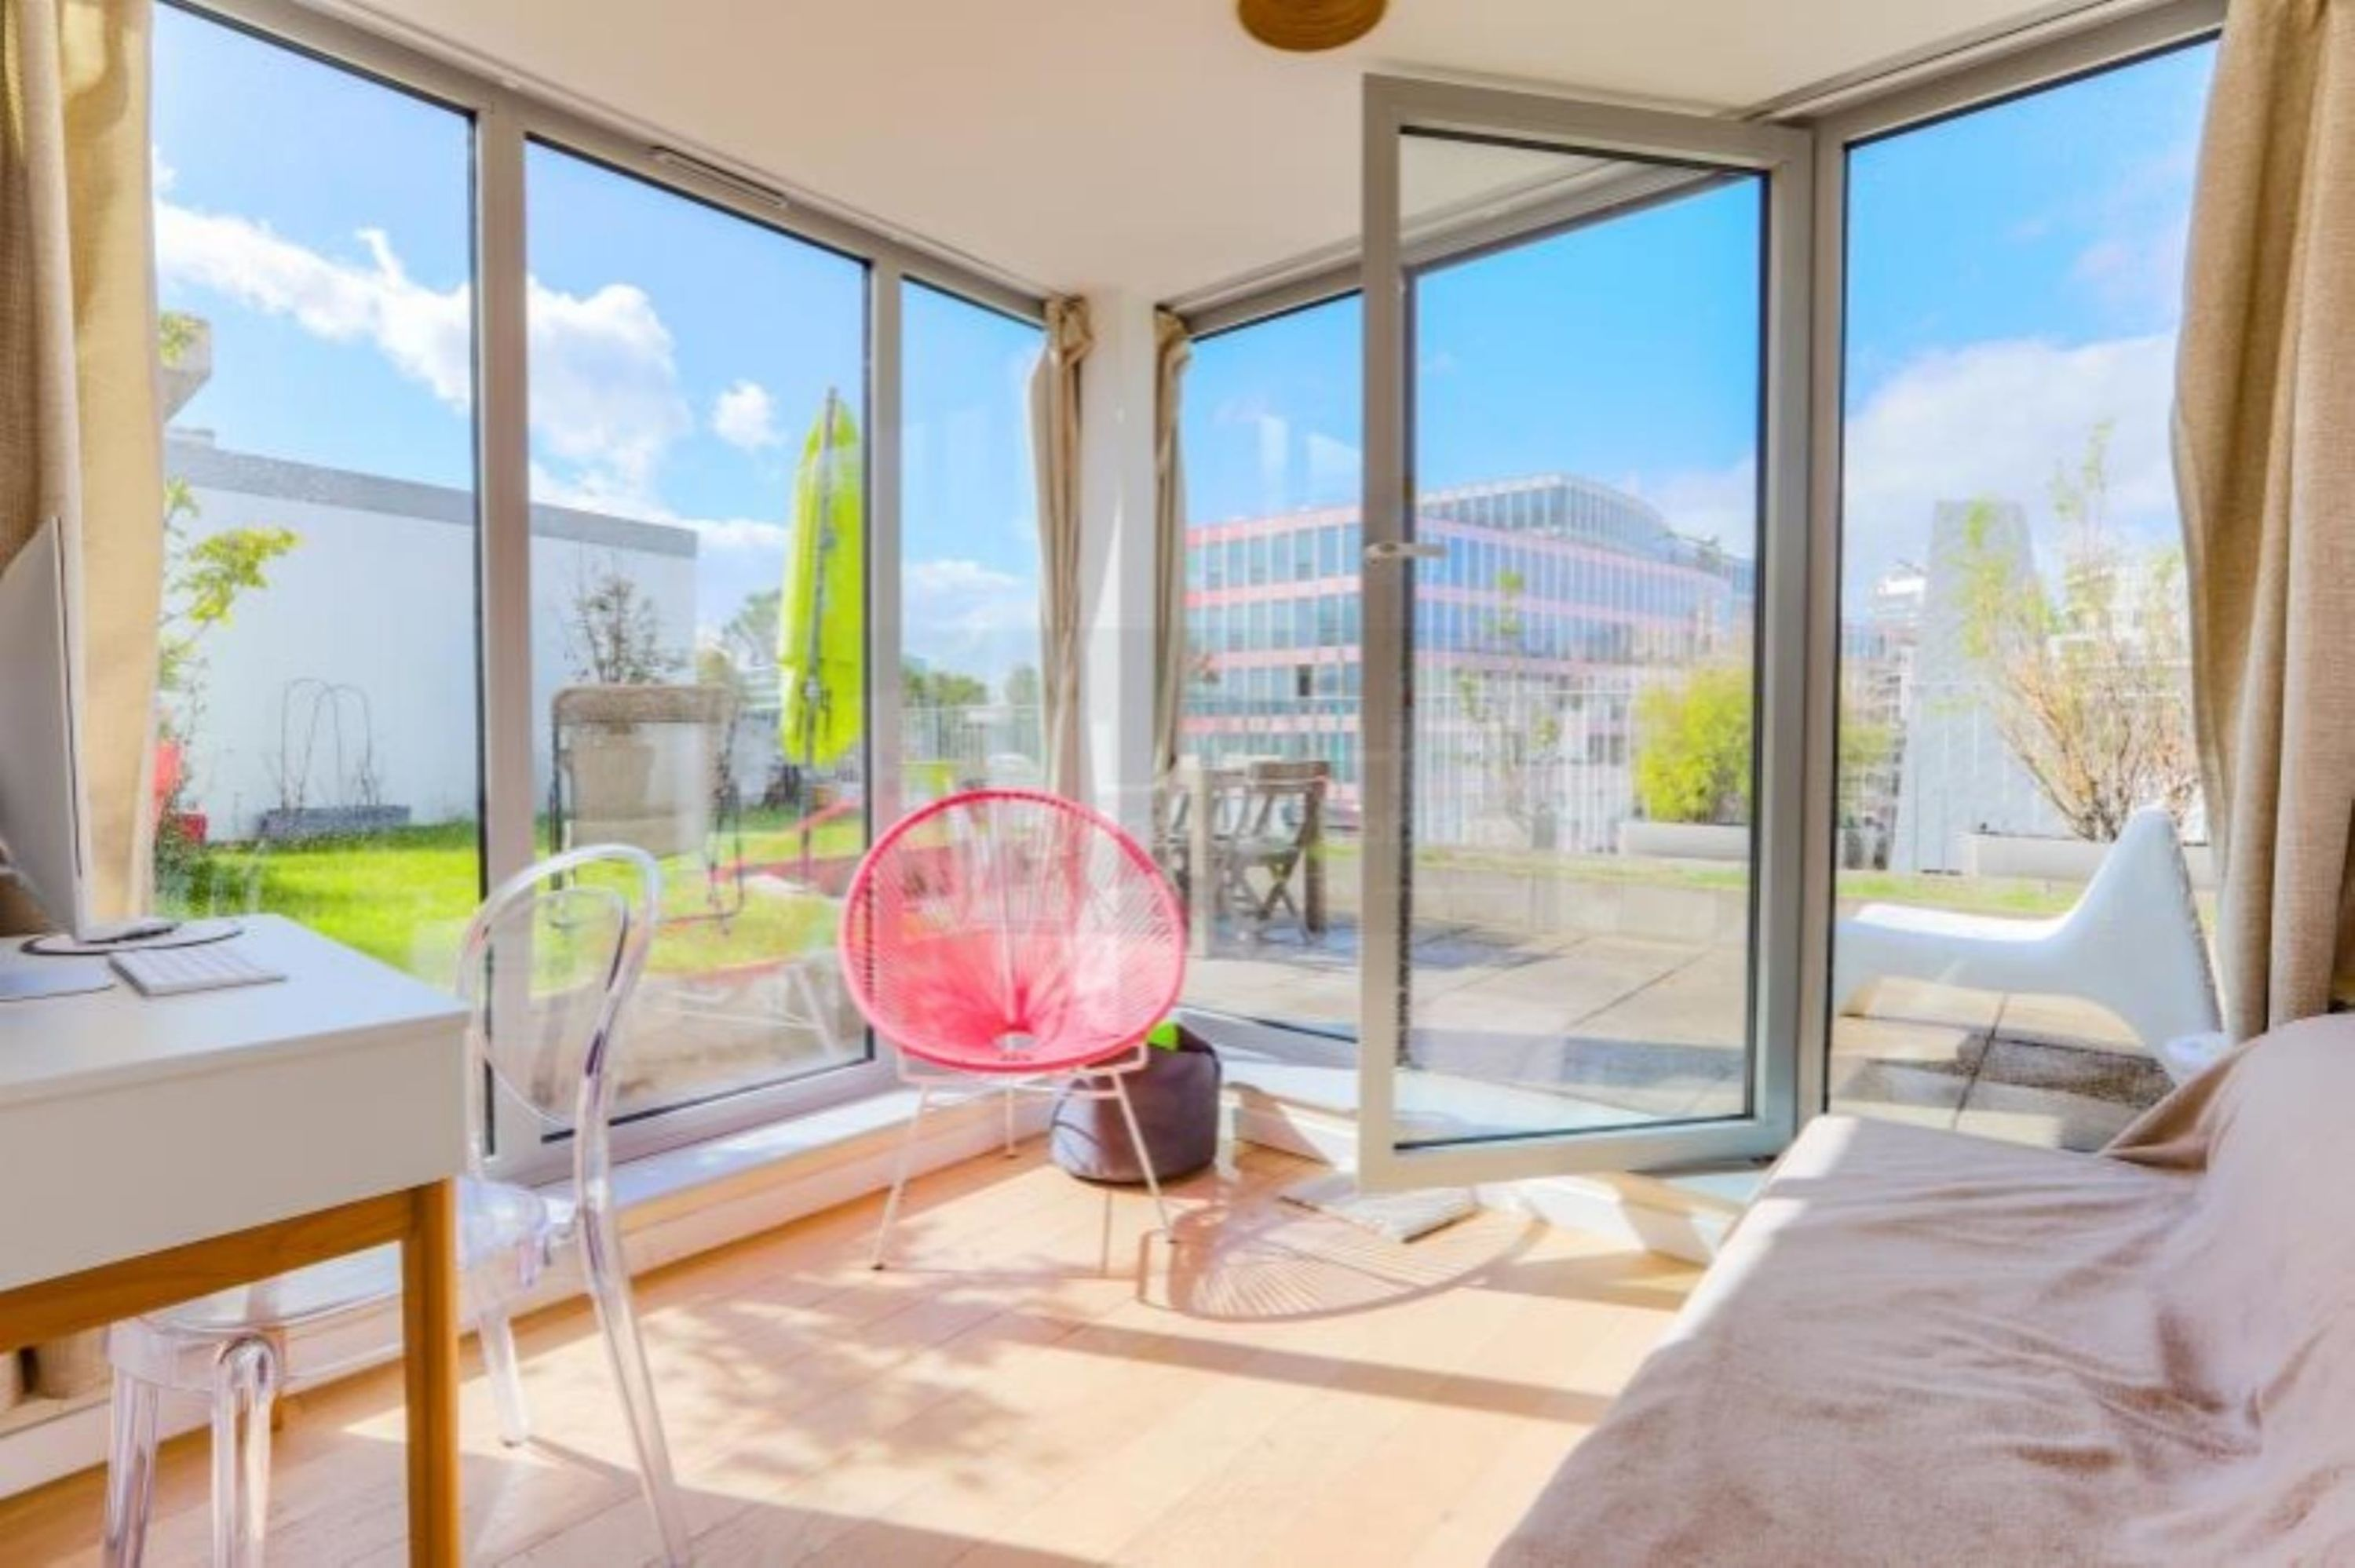 agence immobilière sevres 92 le chesnay 78 achat vente location appartement maison immobilier LMHT ANF PEALOWCJ